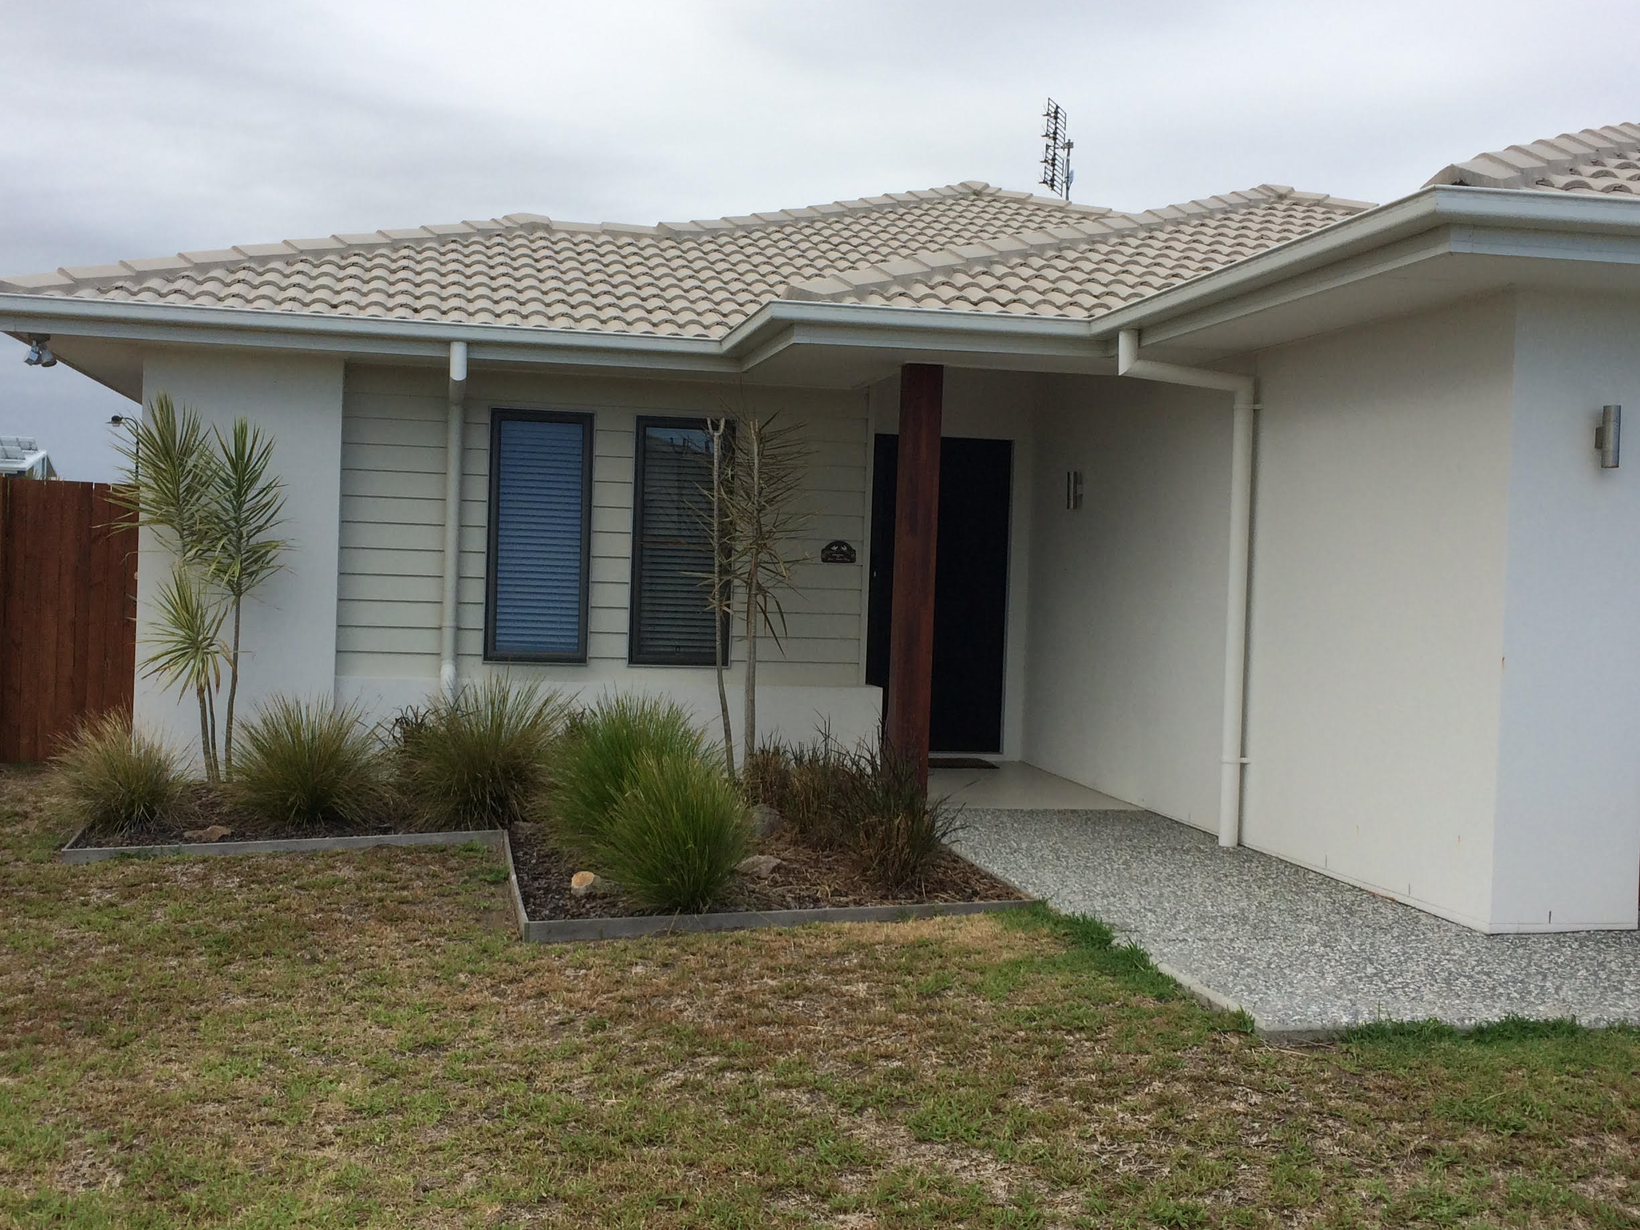 House sitting sunshine coast queensland